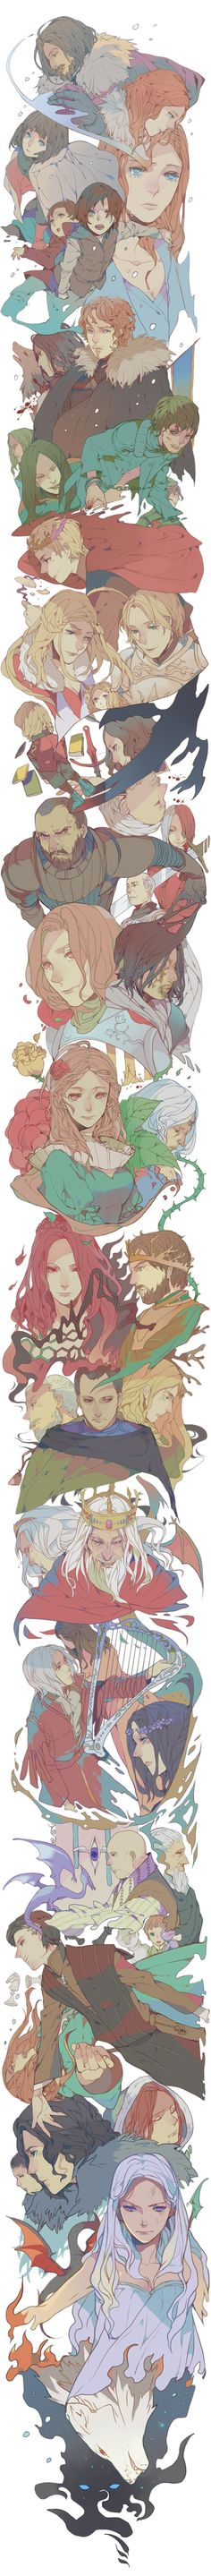 Song Of Ice And Fire Art by Takeshi Kiyoko -- Game of Thrones Anime/Manga Style